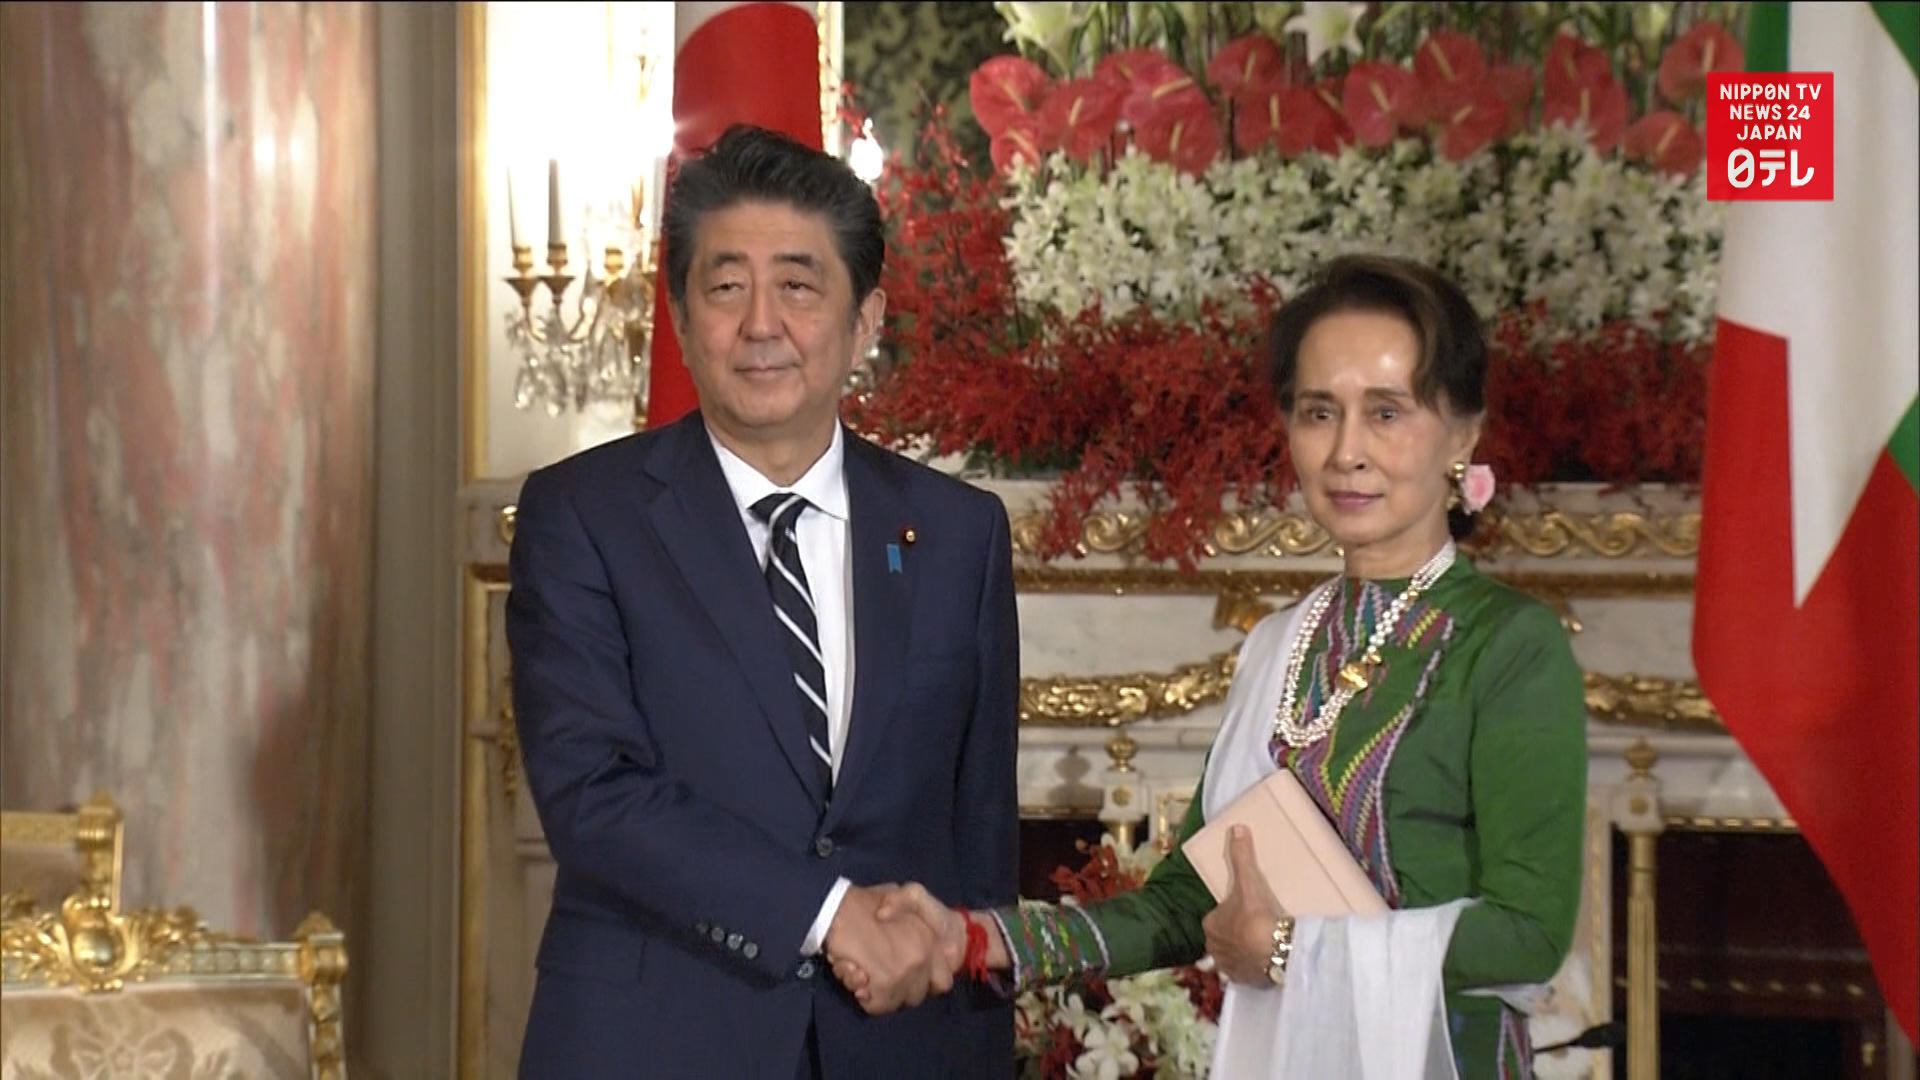 PM Abe's marathon run of enthronement diplomacy